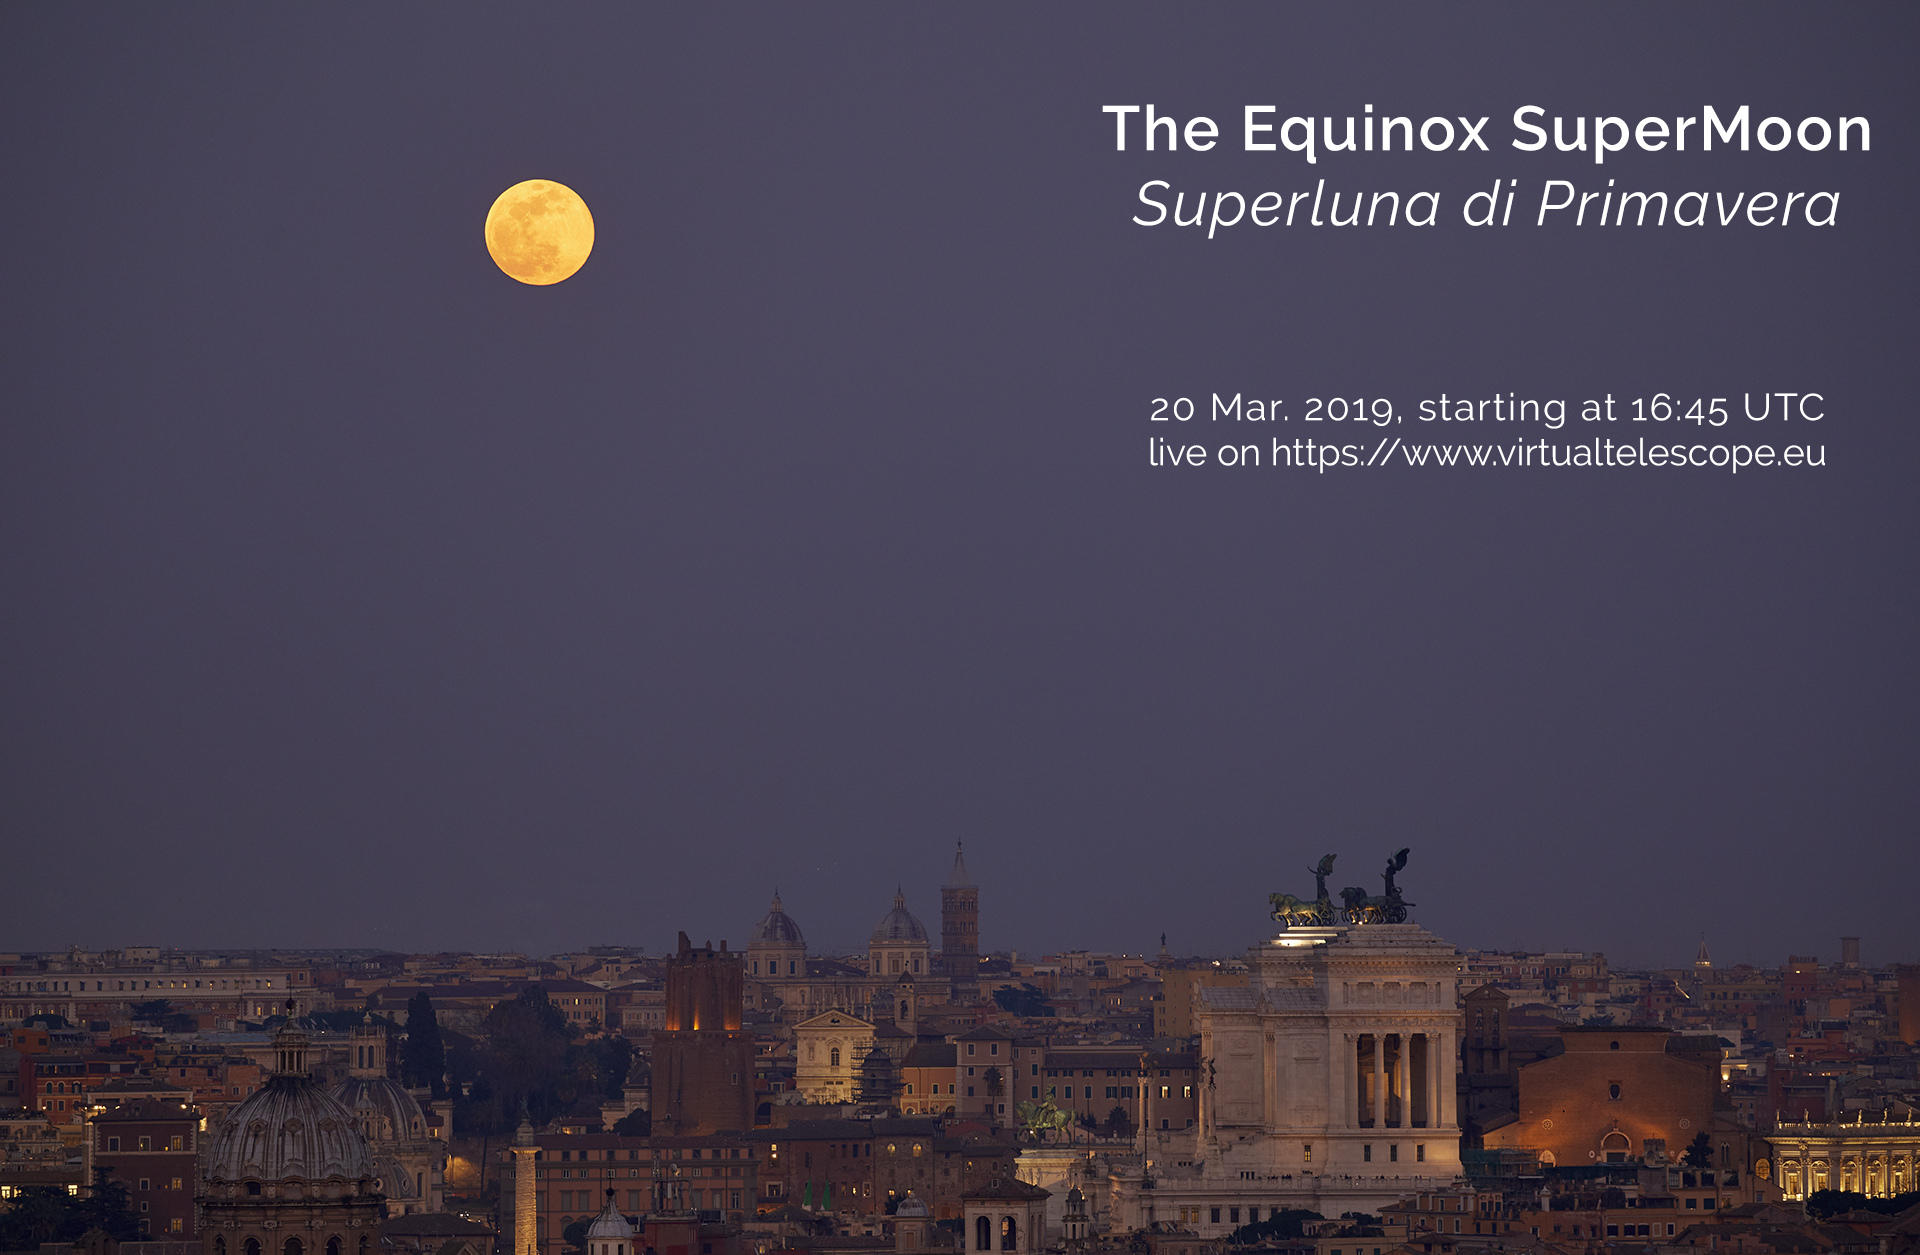 The 2019 Equinox SuperMoon: poster of the event